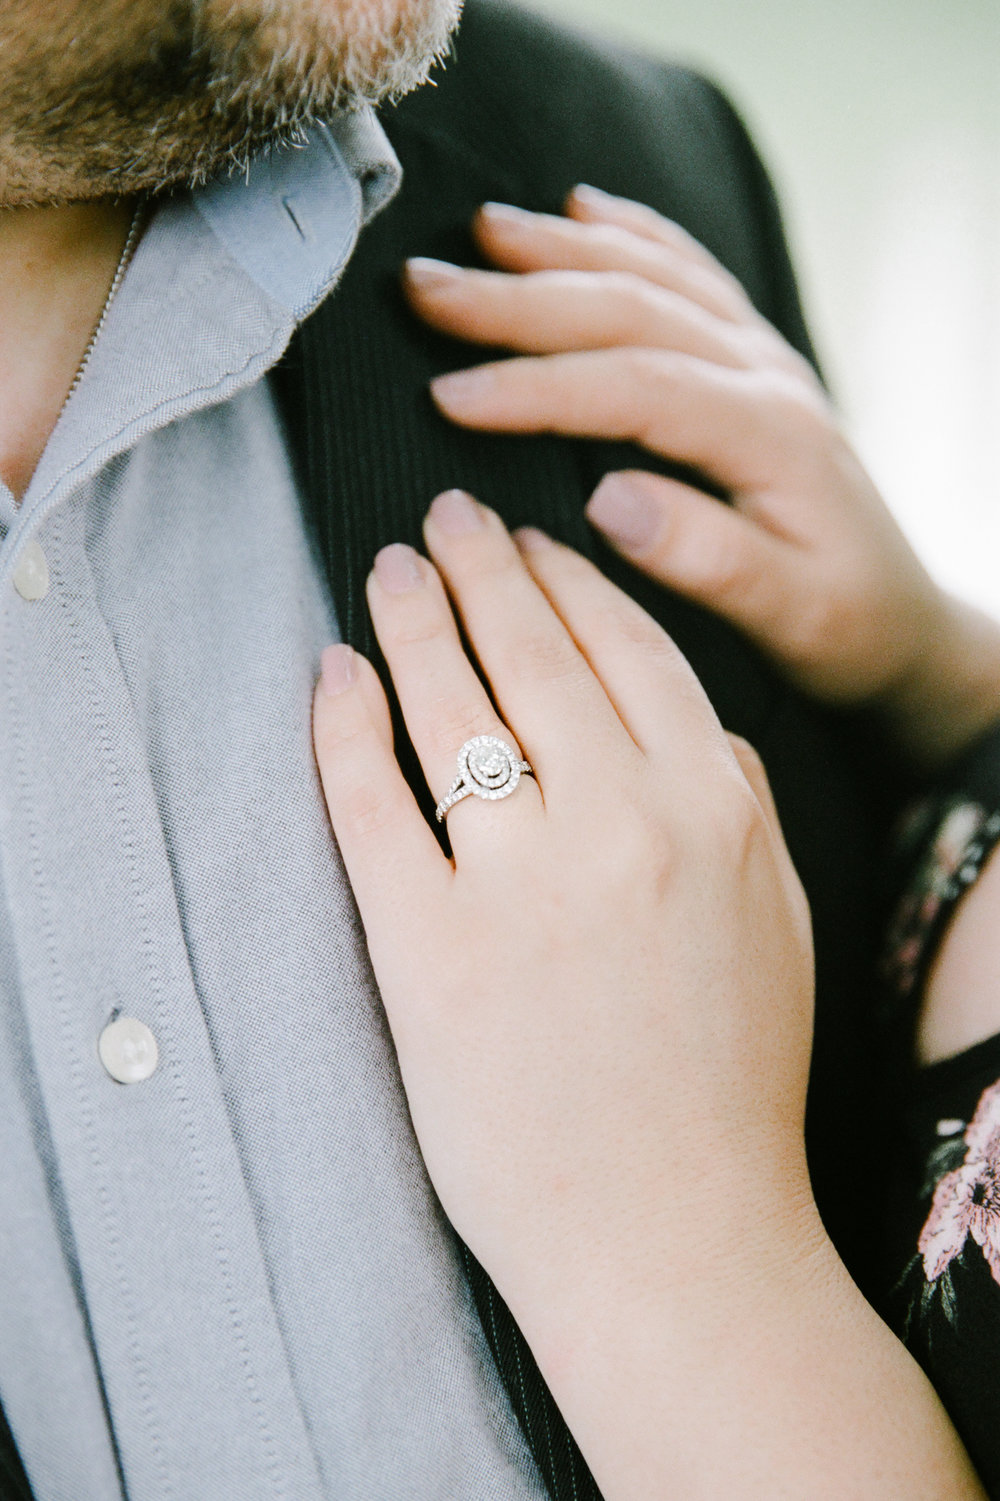 Central-Park-NYC-Engagement-Session-film-photography-26.jpg